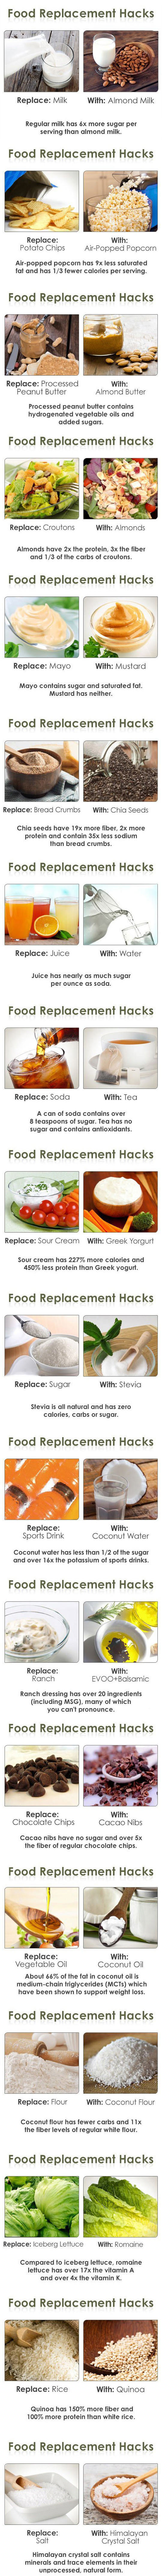 cool-food-replacements-hack-diet